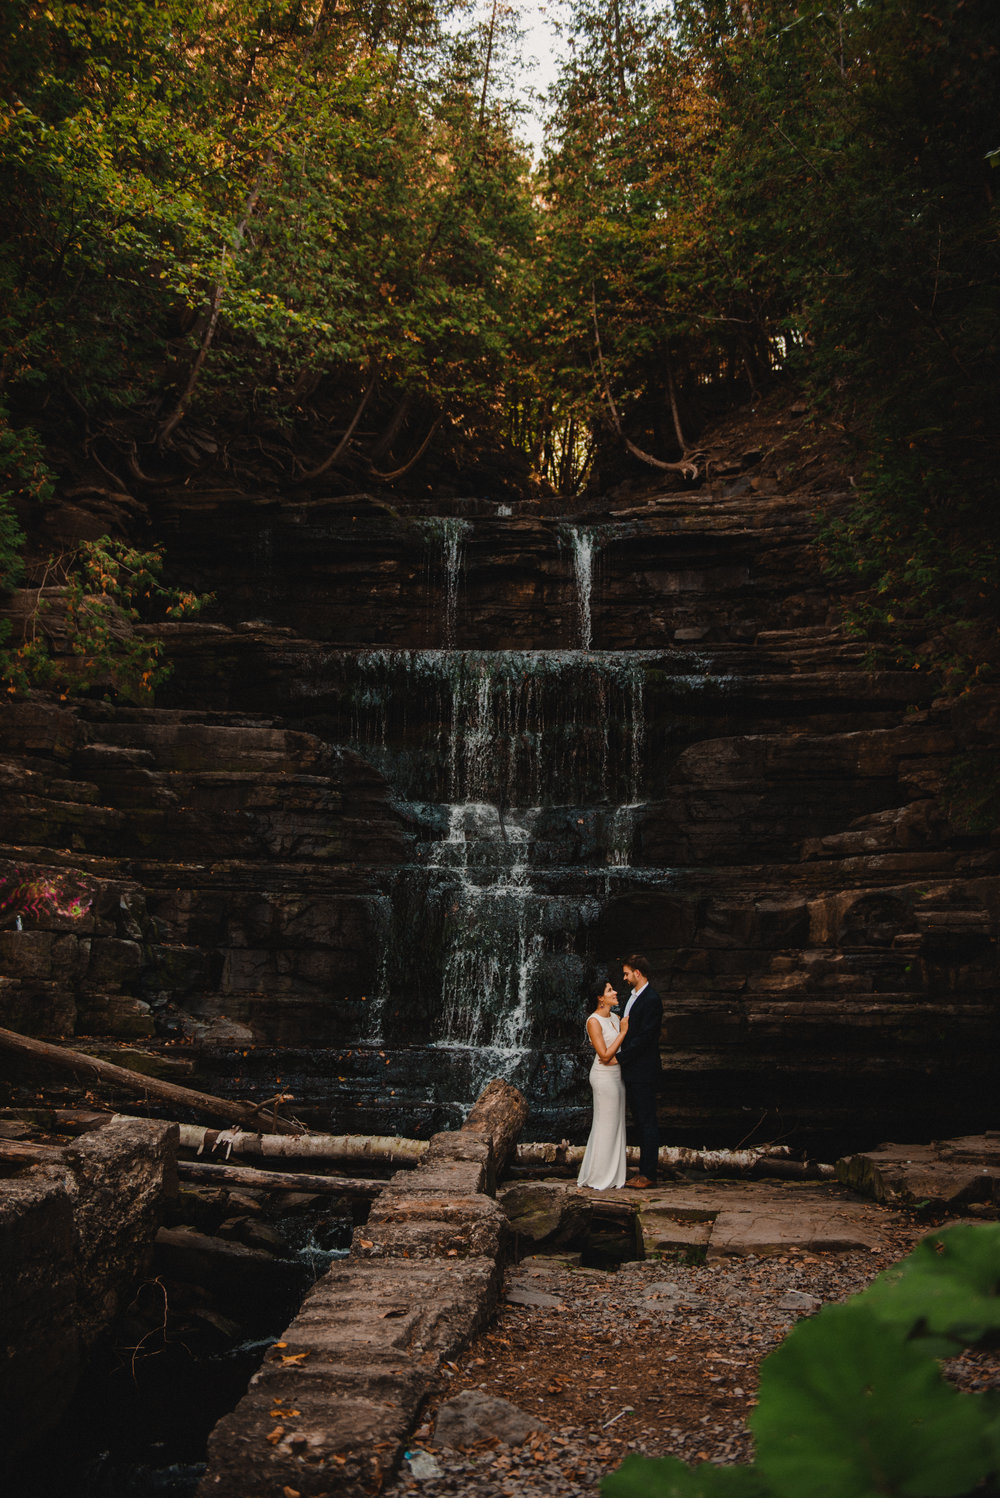 Mocha Tree Studios Ottawa Wedding and Engagement Photographer and Videographer Dark Moody Intimate Authentic Modern Romantic Cinematic Best Candid Princess Louise Falls 3